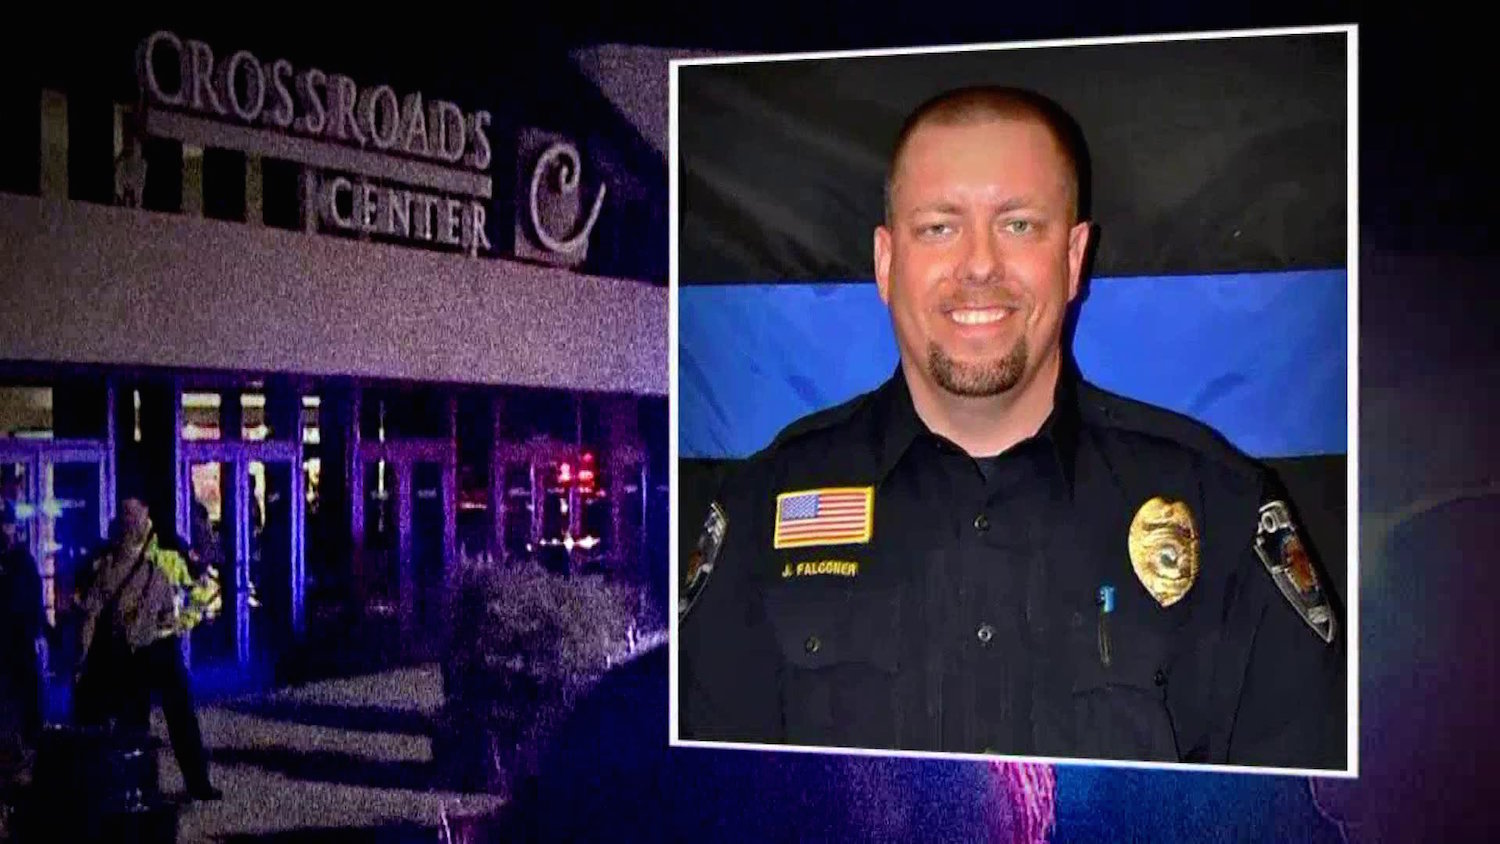 NRA Honors Officer Jason Falconer As 2016 NRA Law Enforcement Officer Of The Year